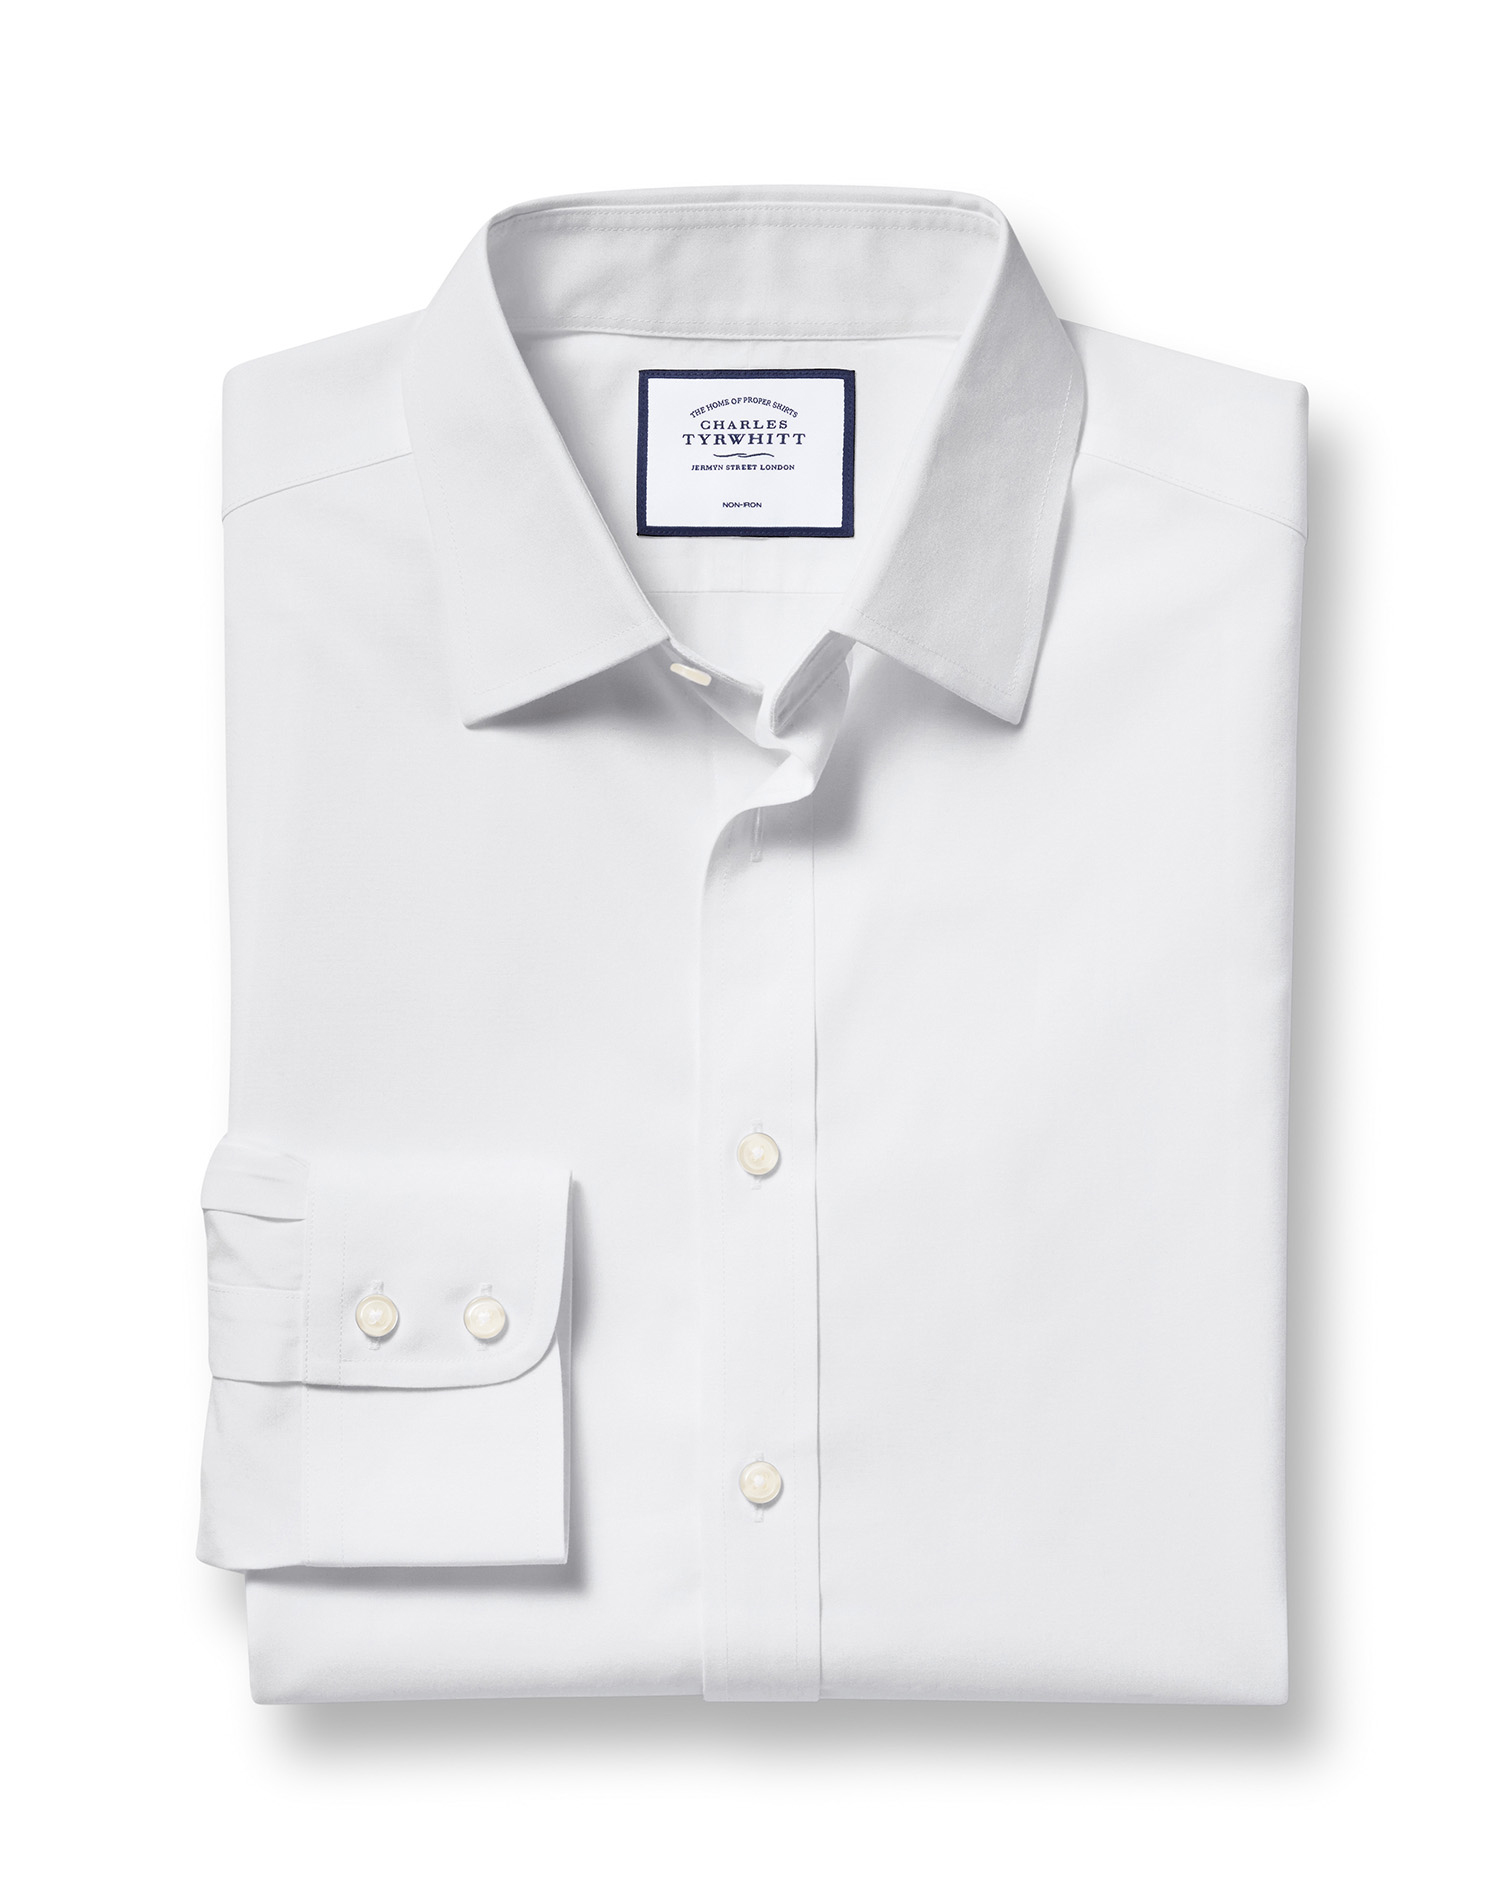 Classic Fit Non-Iron Poplin White Cotton Formal Shirt Single Cuff Size 15.5/32 by Charles Tyrwhitt